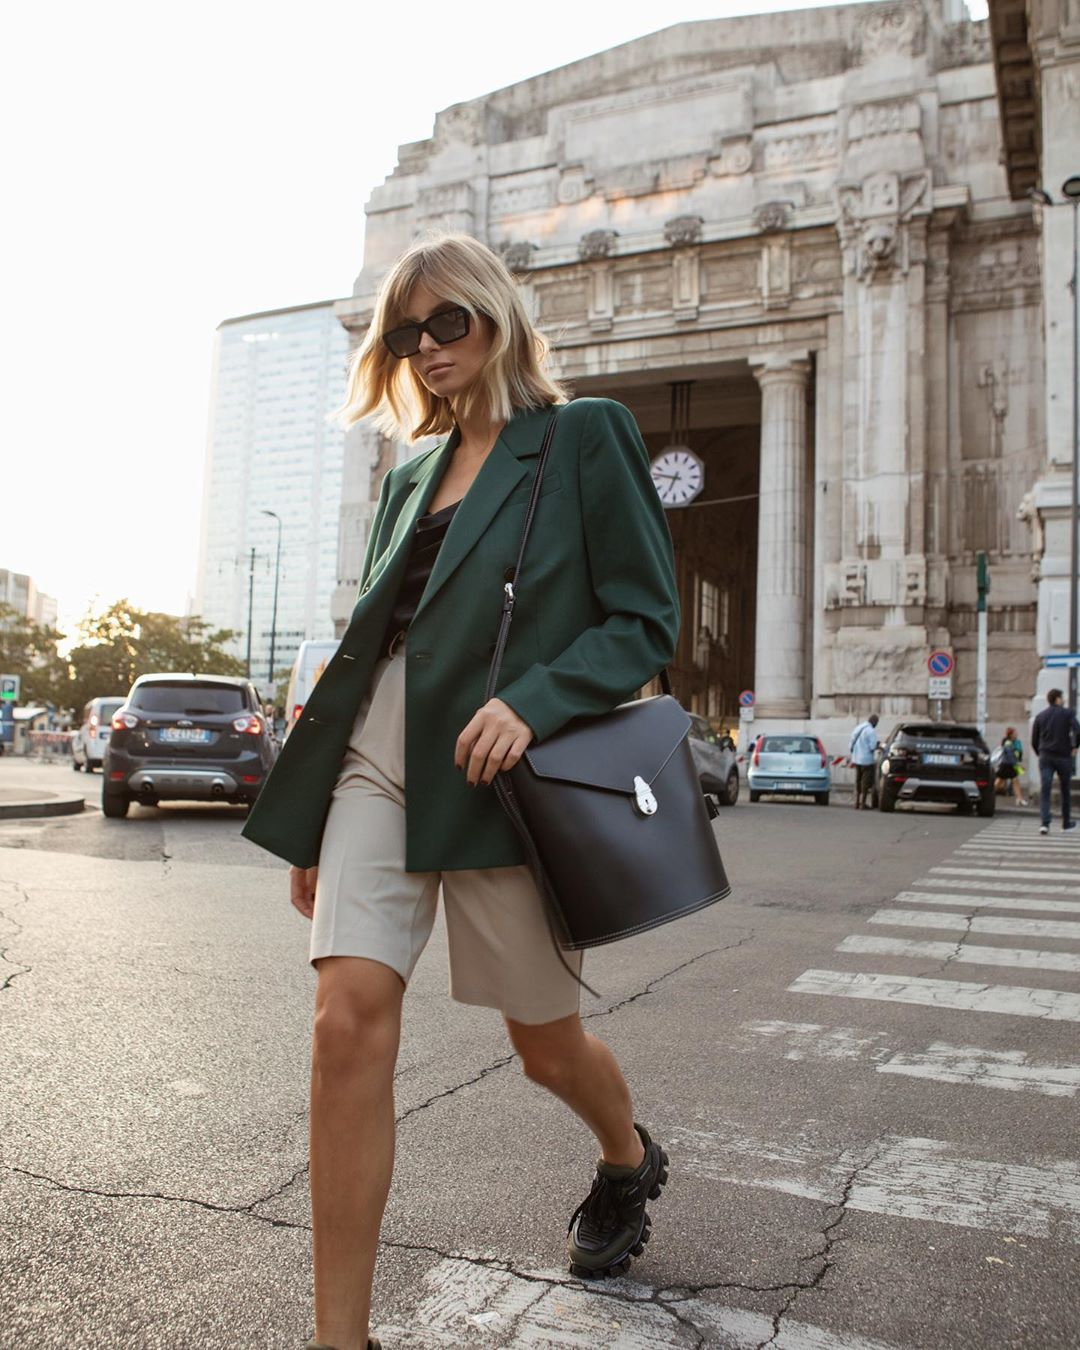 xenia-adonts-trouser-shorts-outfit-street-style